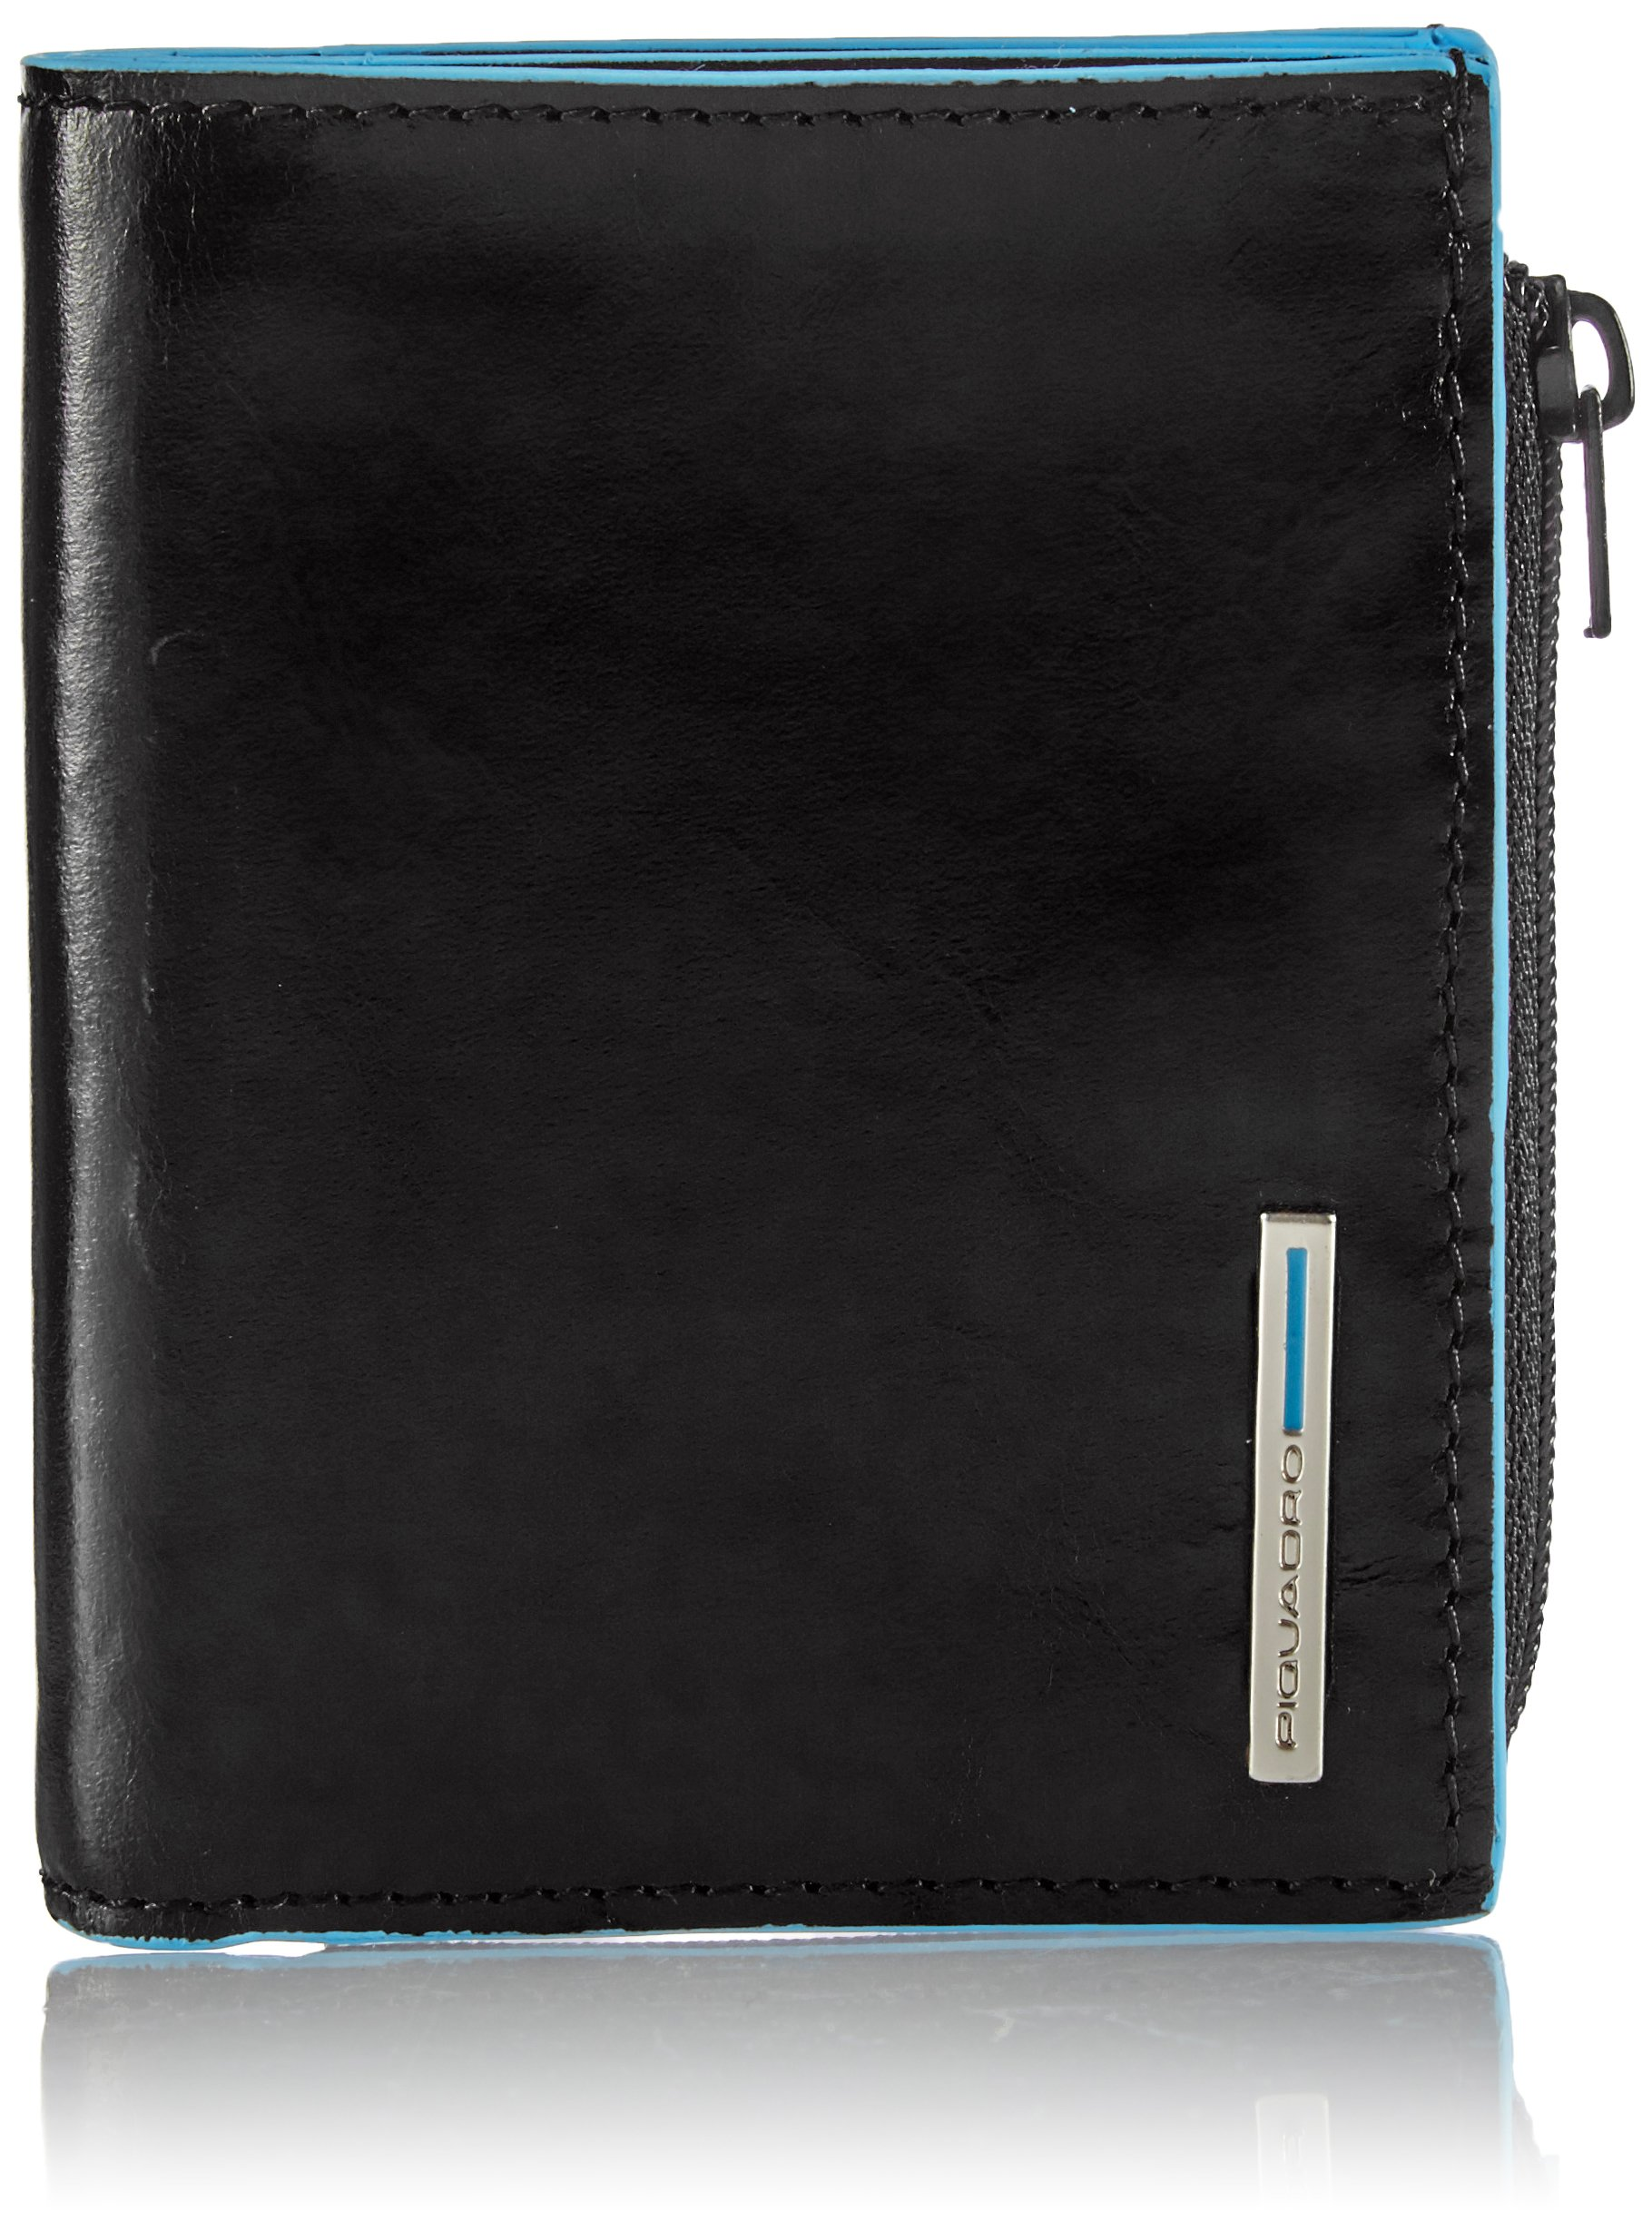 Piquadro Pocket Wallet In Leather, Black, One Size